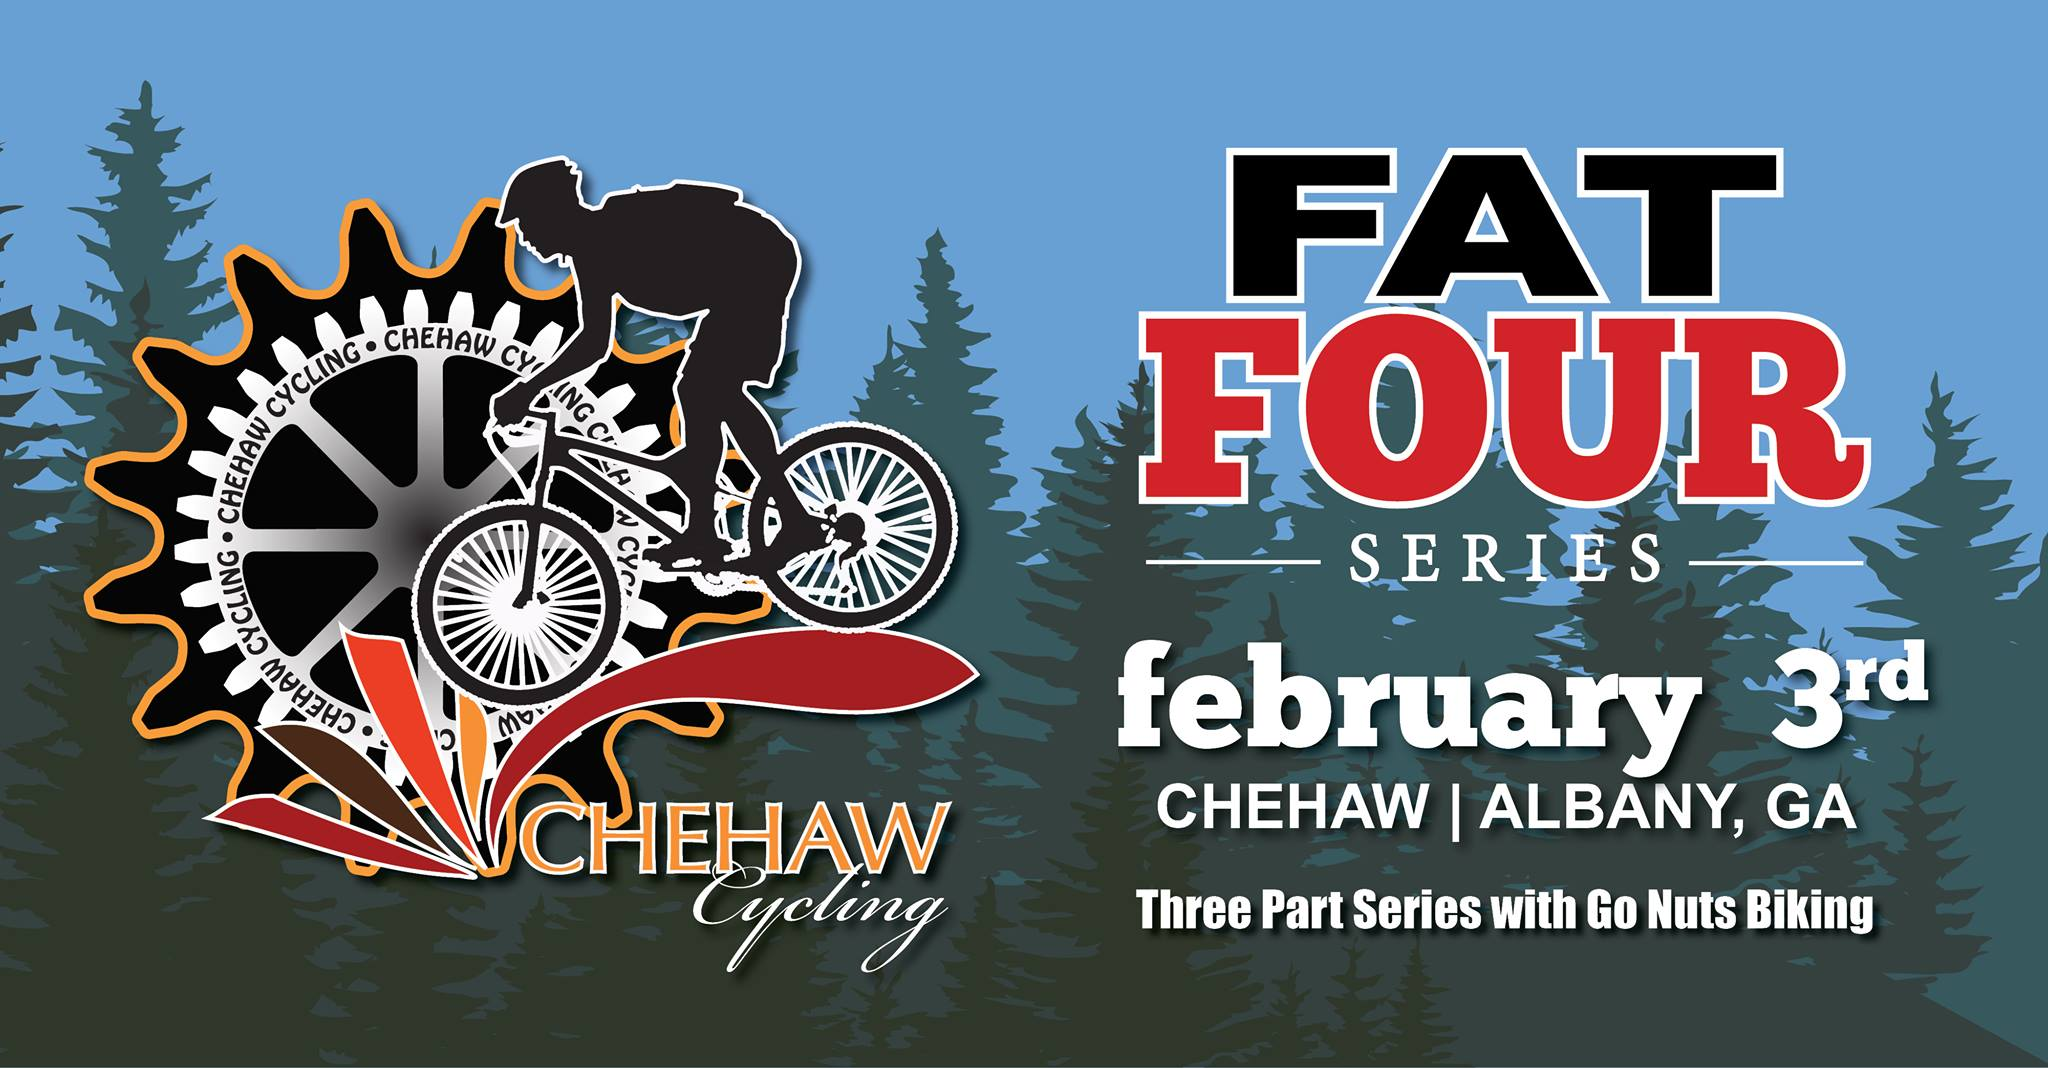 Chehaw Fat Four